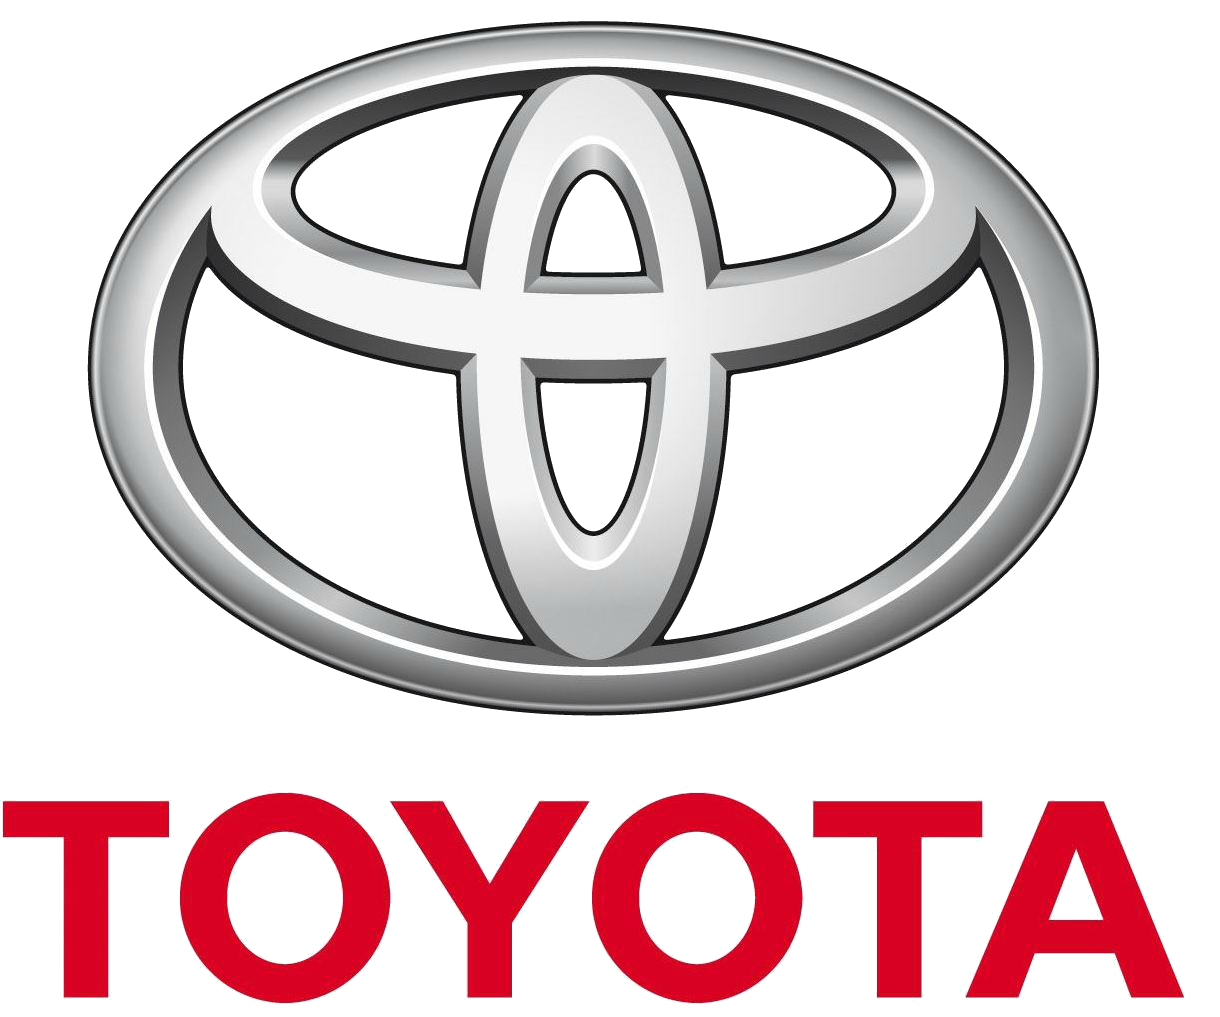 Name Of Logos Around The World >> Toyota Logo, Toyota Car Symbol Meaning and History | Car ...